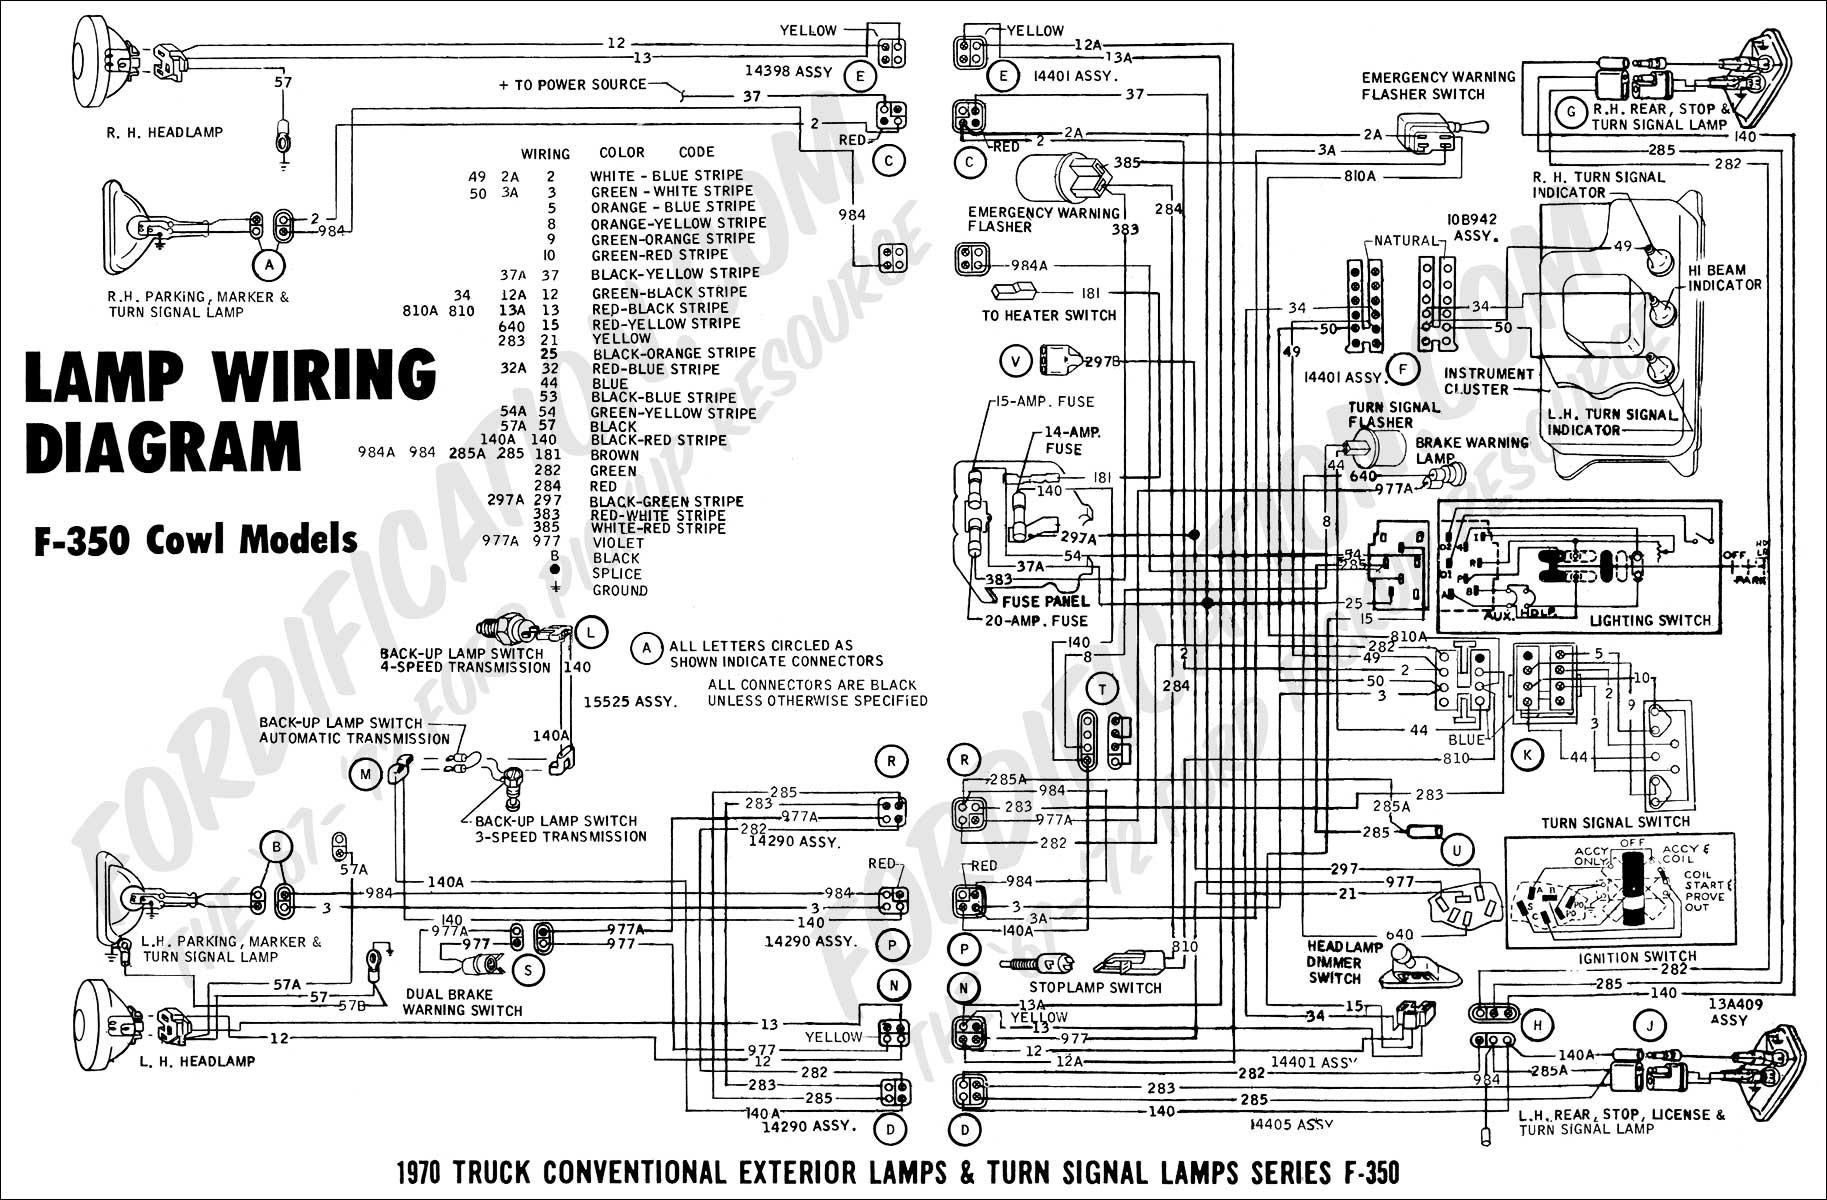 96 Ford F 250 Wiring Diagram - Wiring Diagram Networks